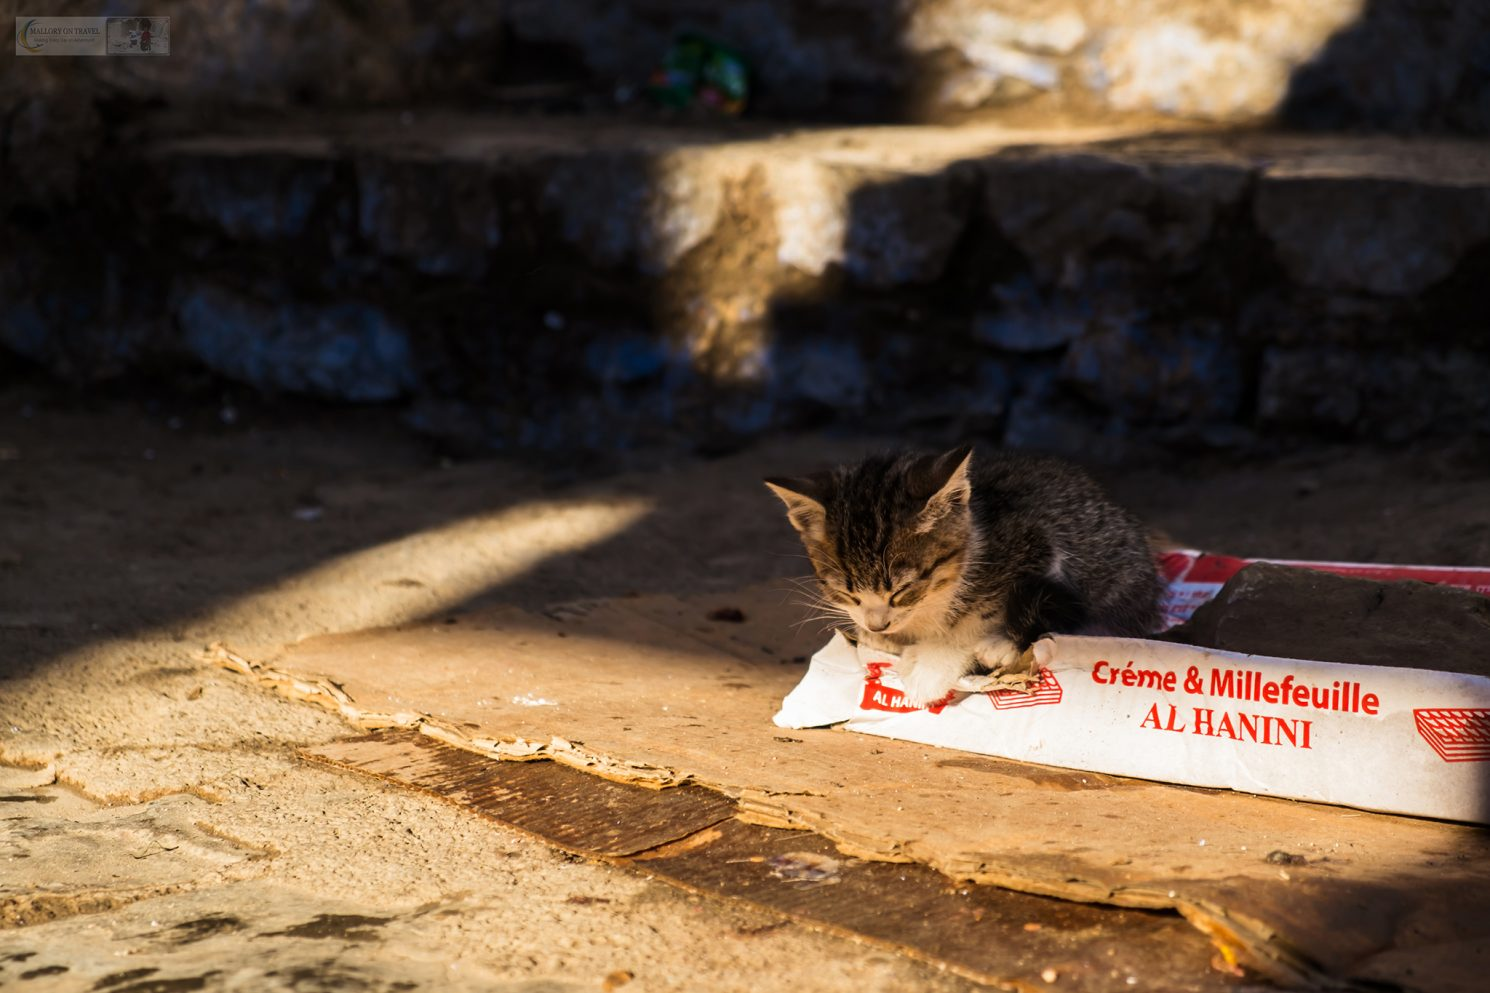 One of Chefchaouens cats; a kitten of the Blue city sleeps in a disused pizza delivery box in the streets of the Moroccan city, North Africa on Mallory on Travel adventure travel, photography, travel Iain Mallory_Morocco 081